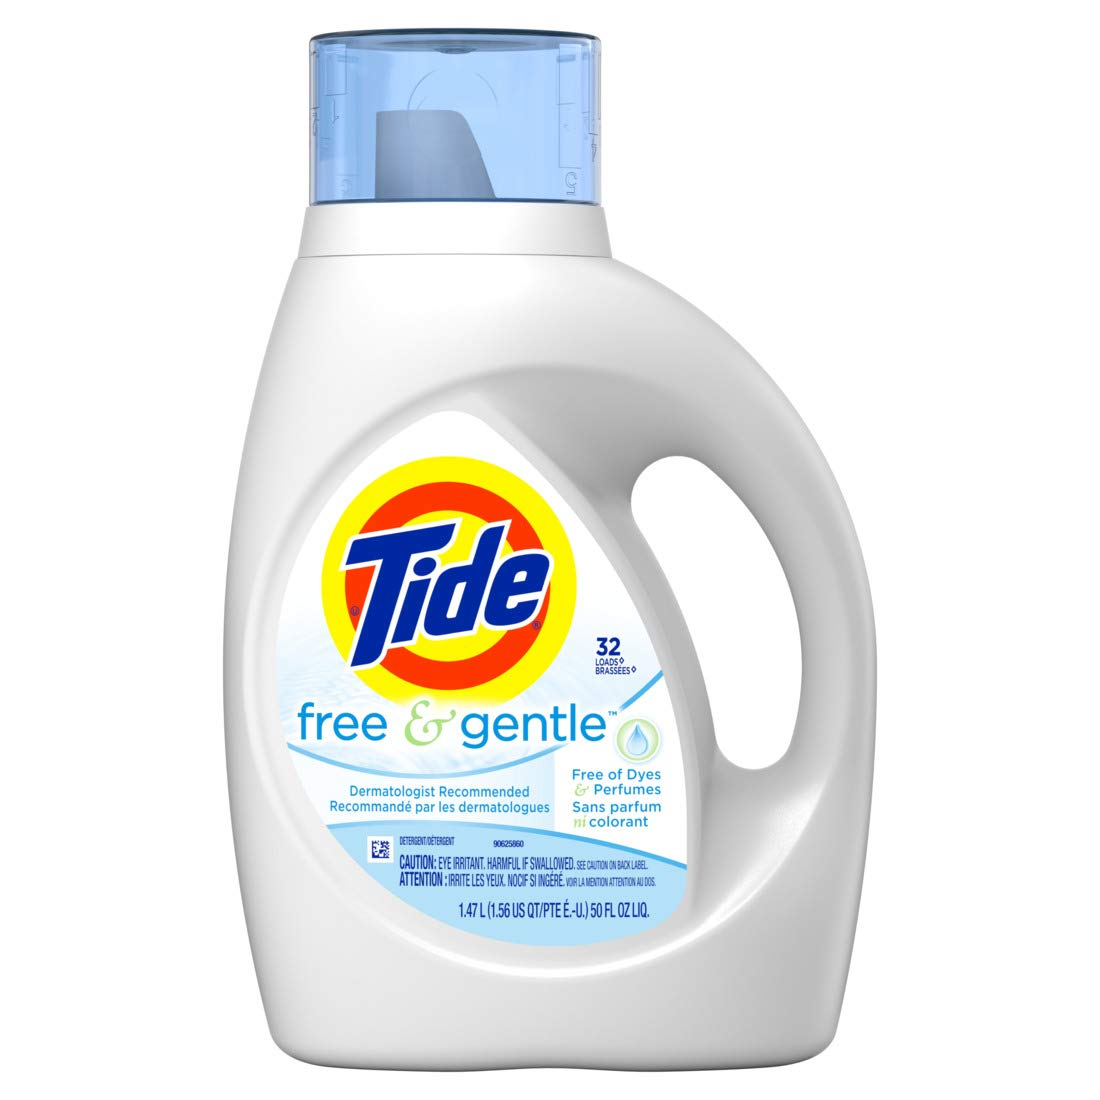 Tide Free & Gentle Liquid Laundry Detergent, Unscented, 1.47 L (32 Loads)